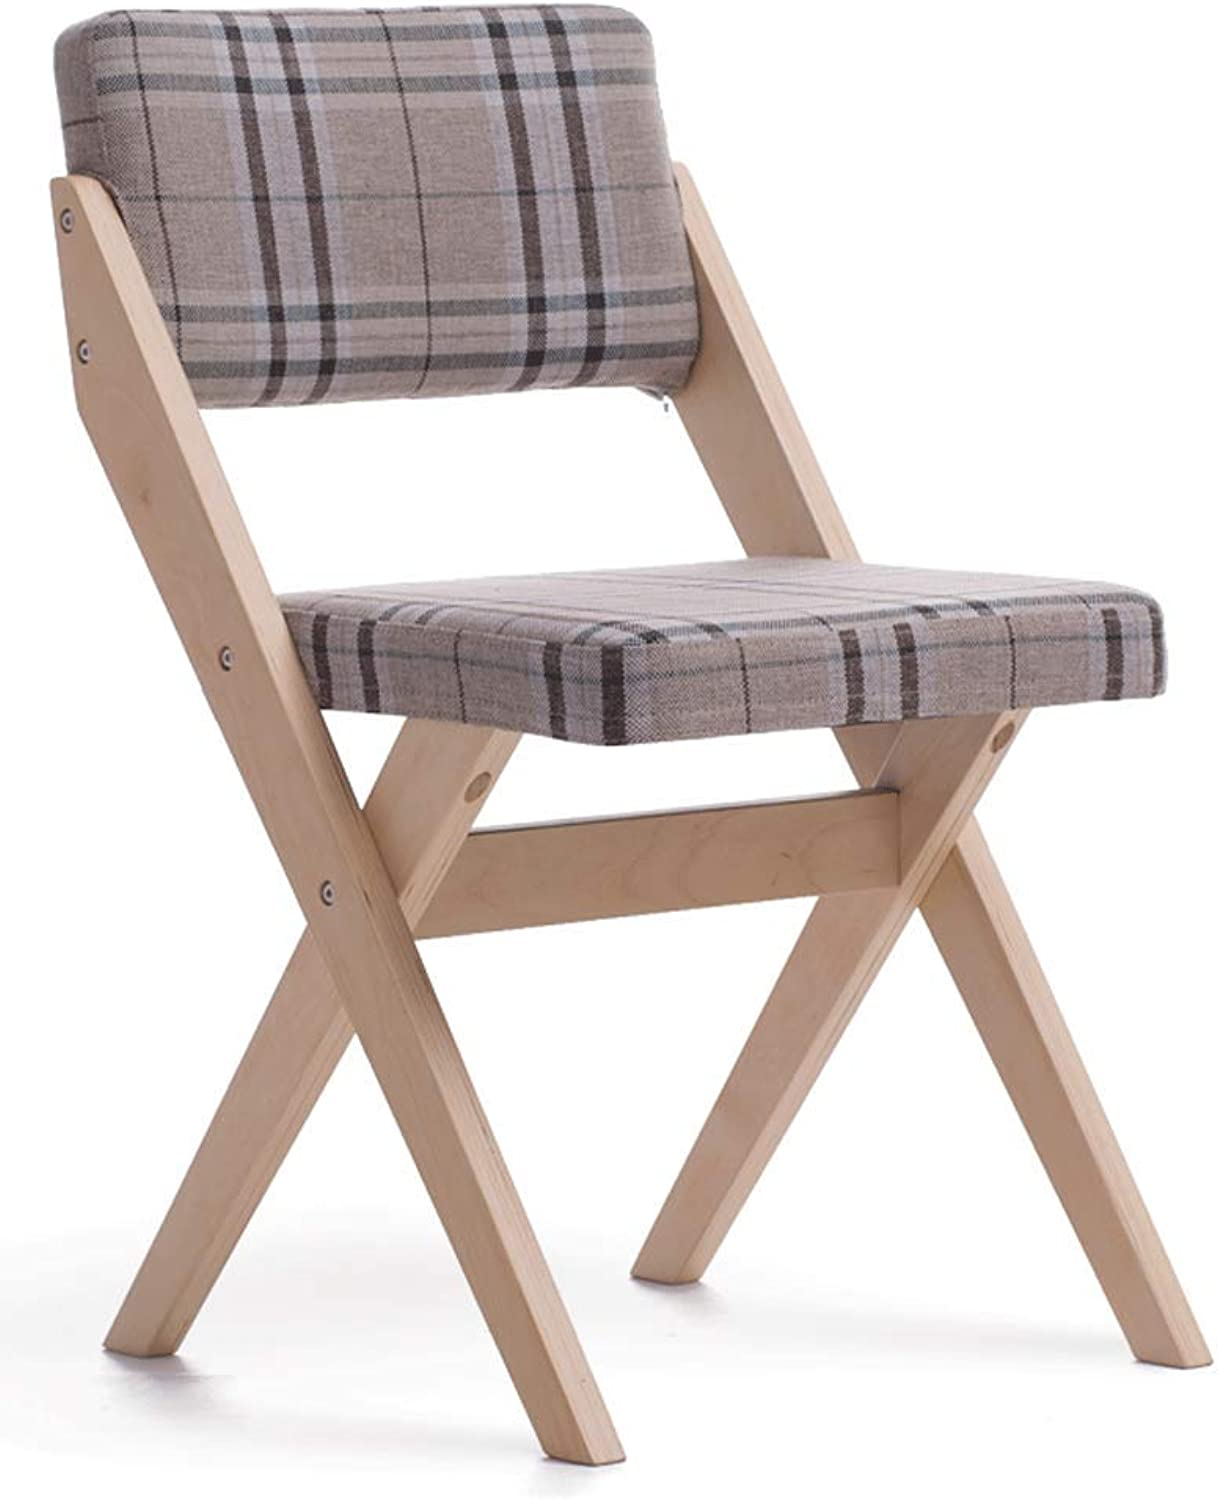 Solid Wood Dining Chair Simple Modern Fabric Chair Home Restaurant Milk Tea Conference Hotel Single Chair Wooden Chair (color   A)